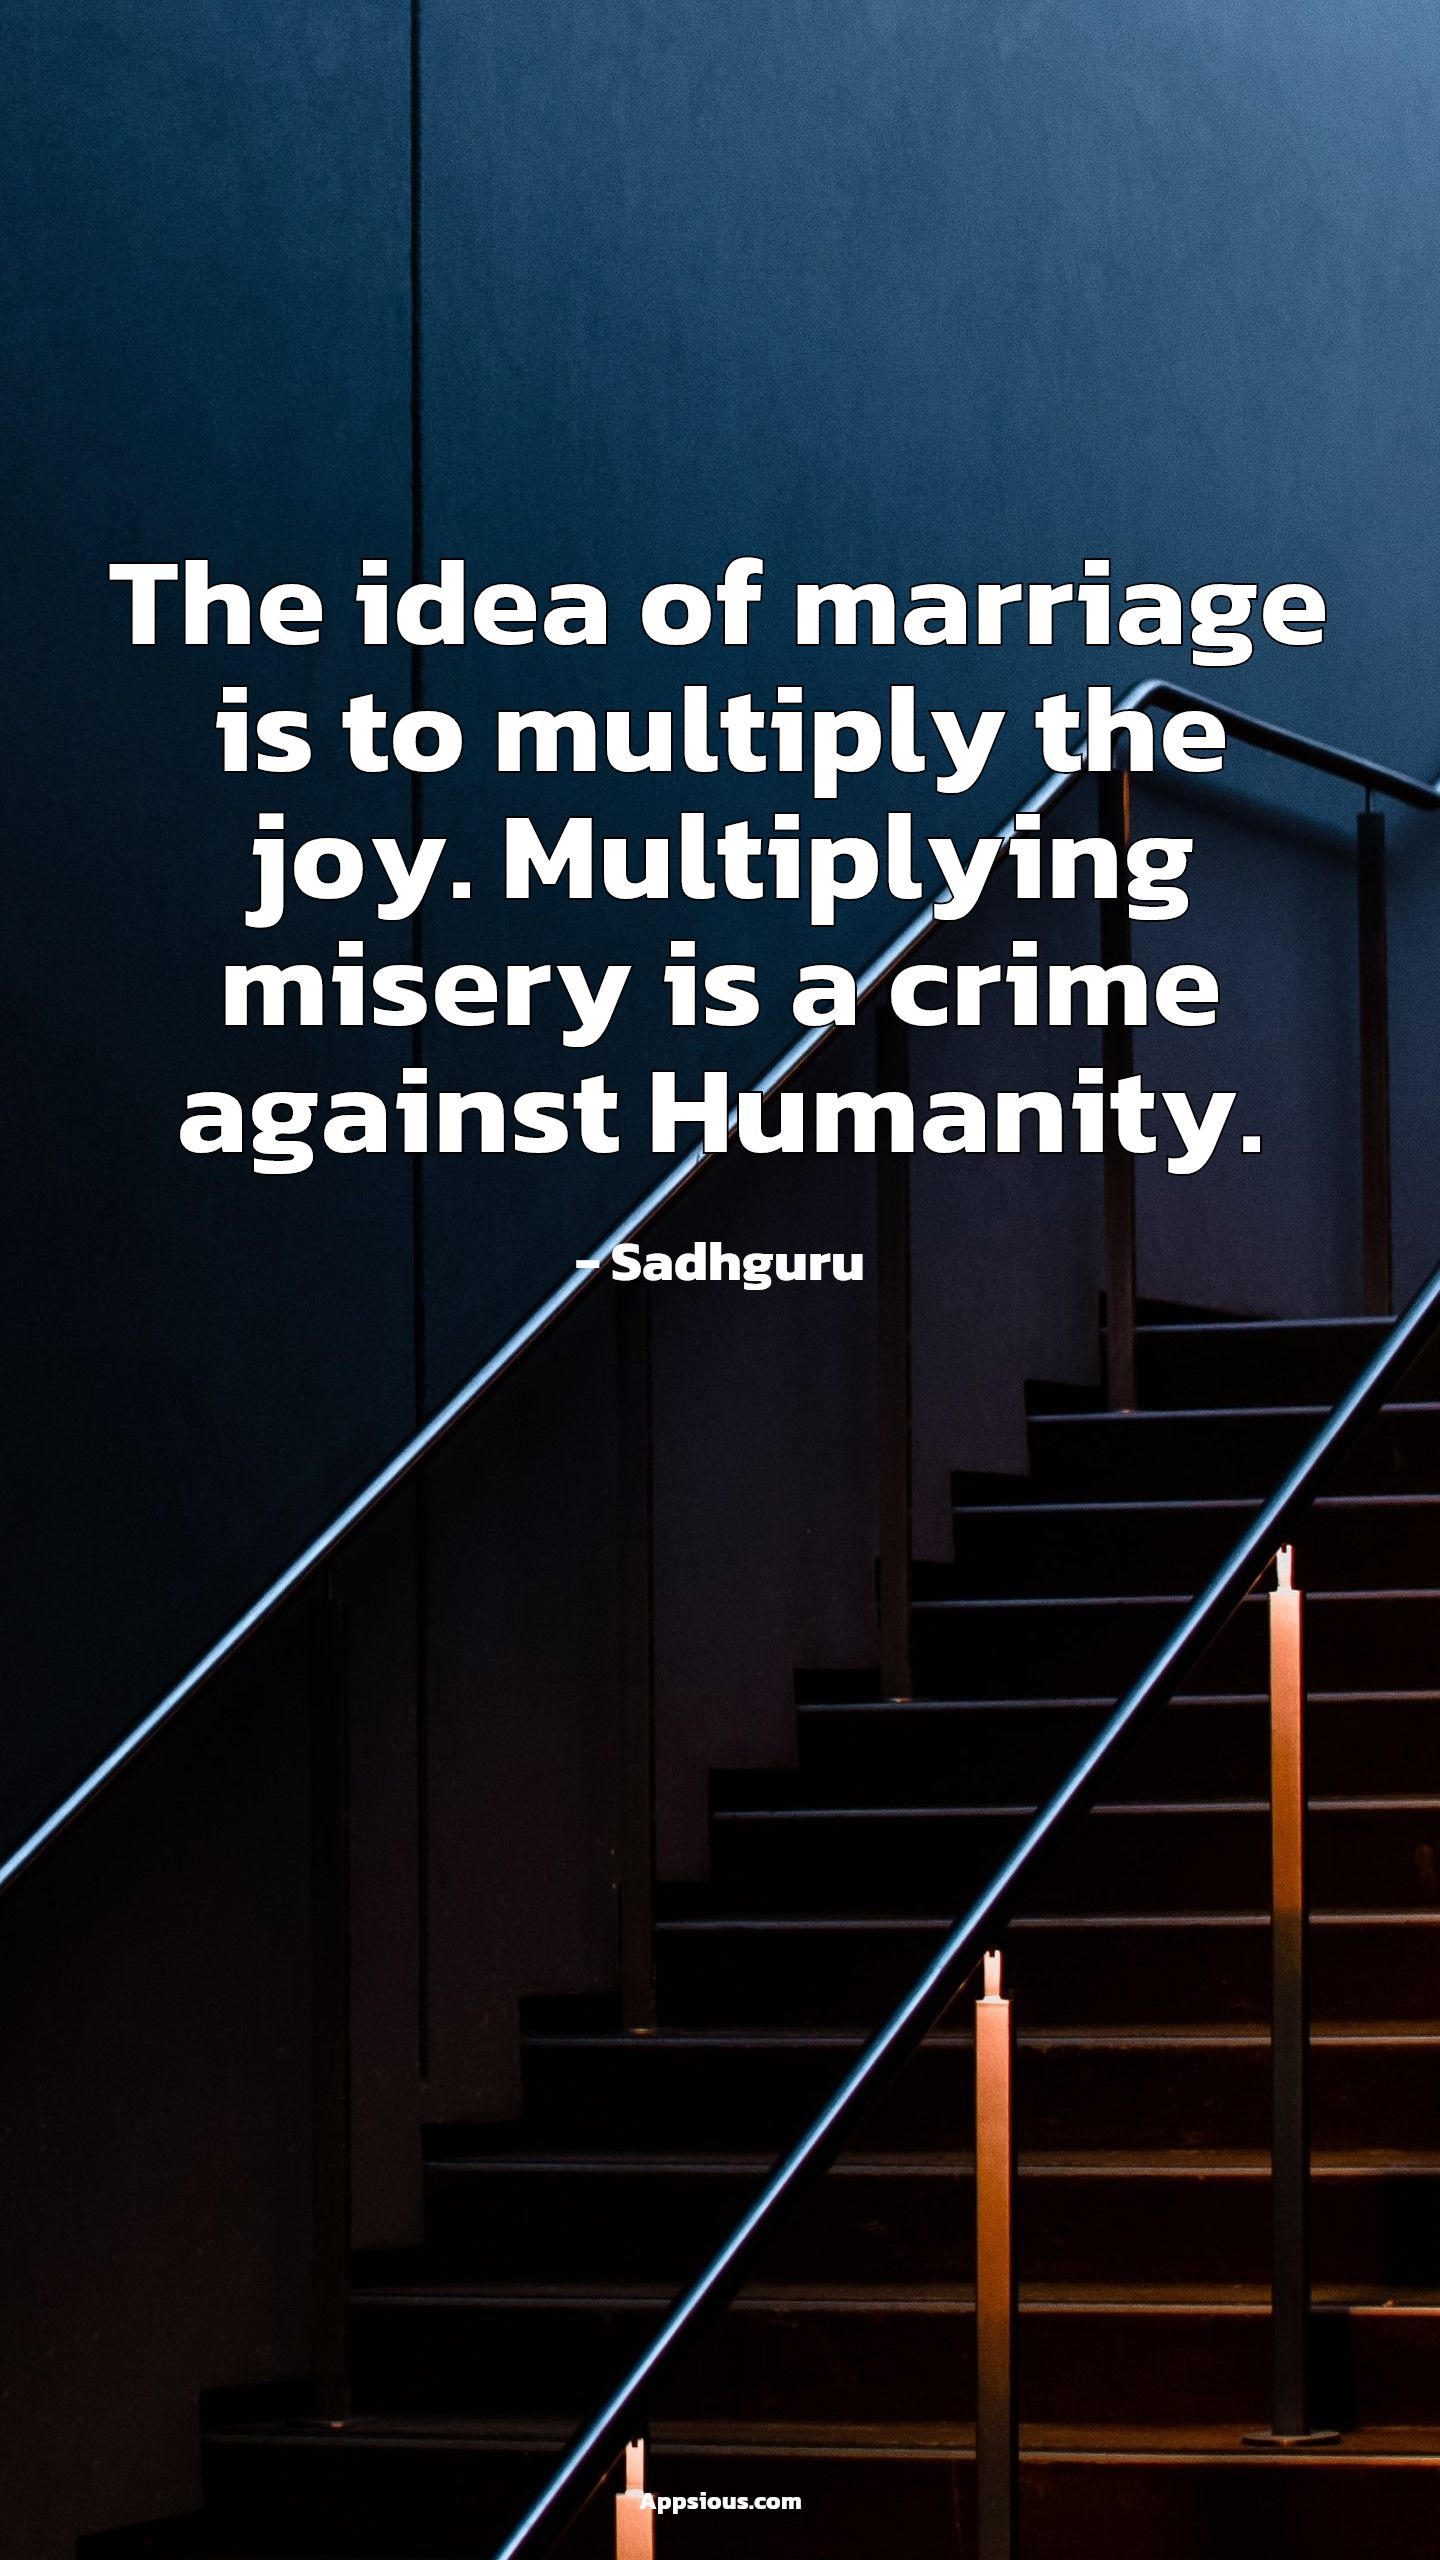 The idea of marriage is to multiply the joy. Multiplying misery is a crime against Humanity.